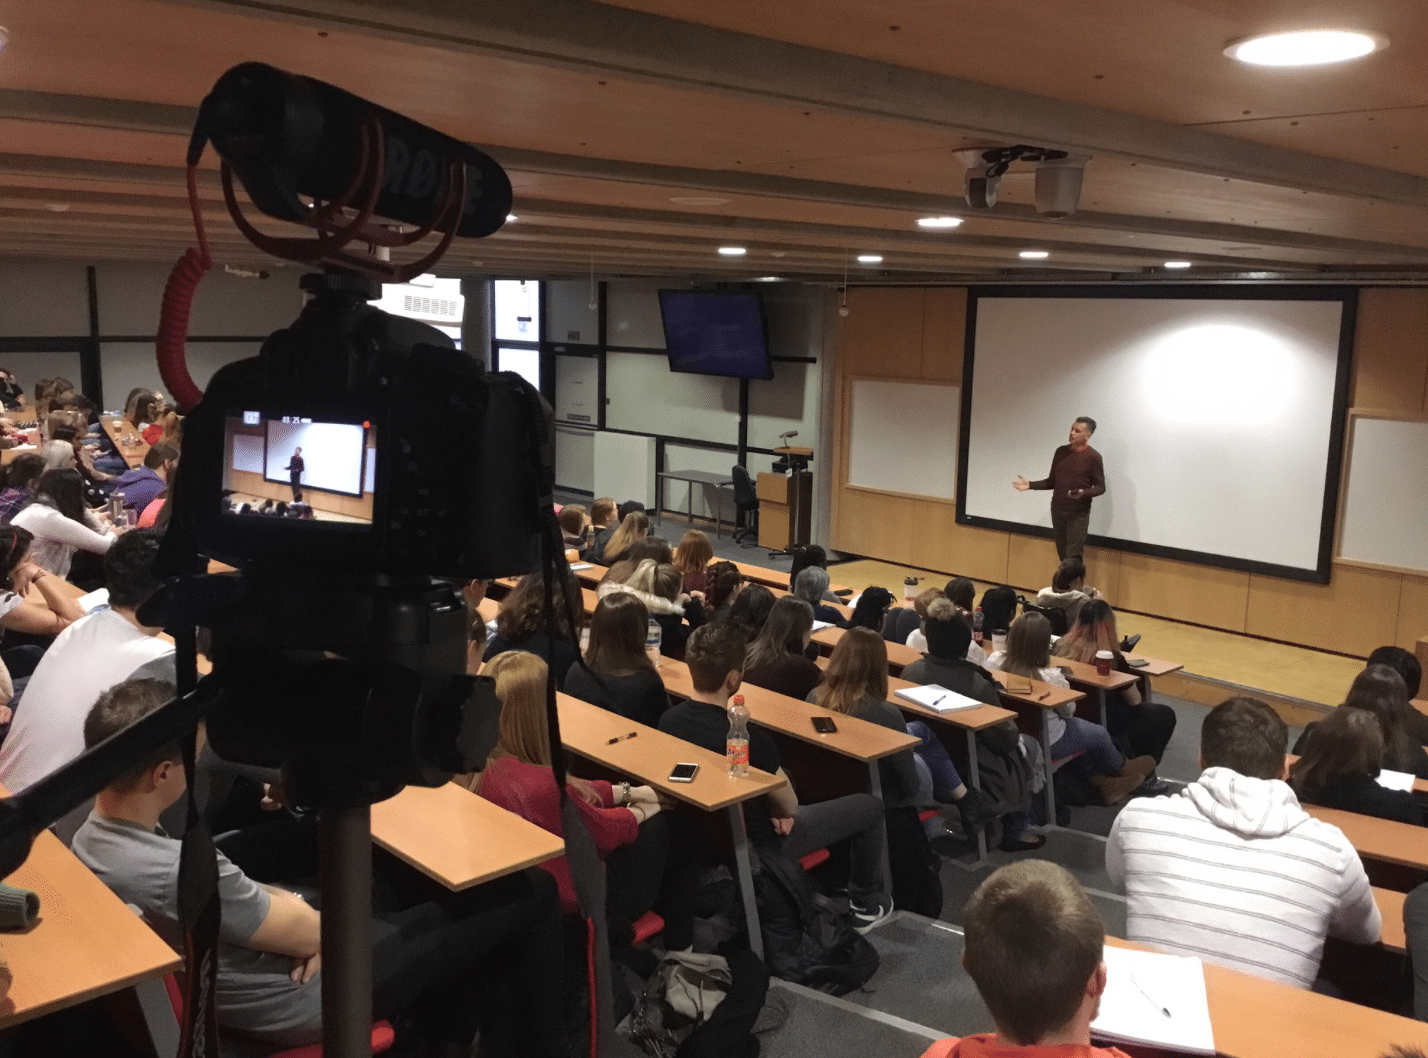 Learning at Lincoln - Chris Packham delivering a lecture in Cargil lecture theatre, University of Lincoln.